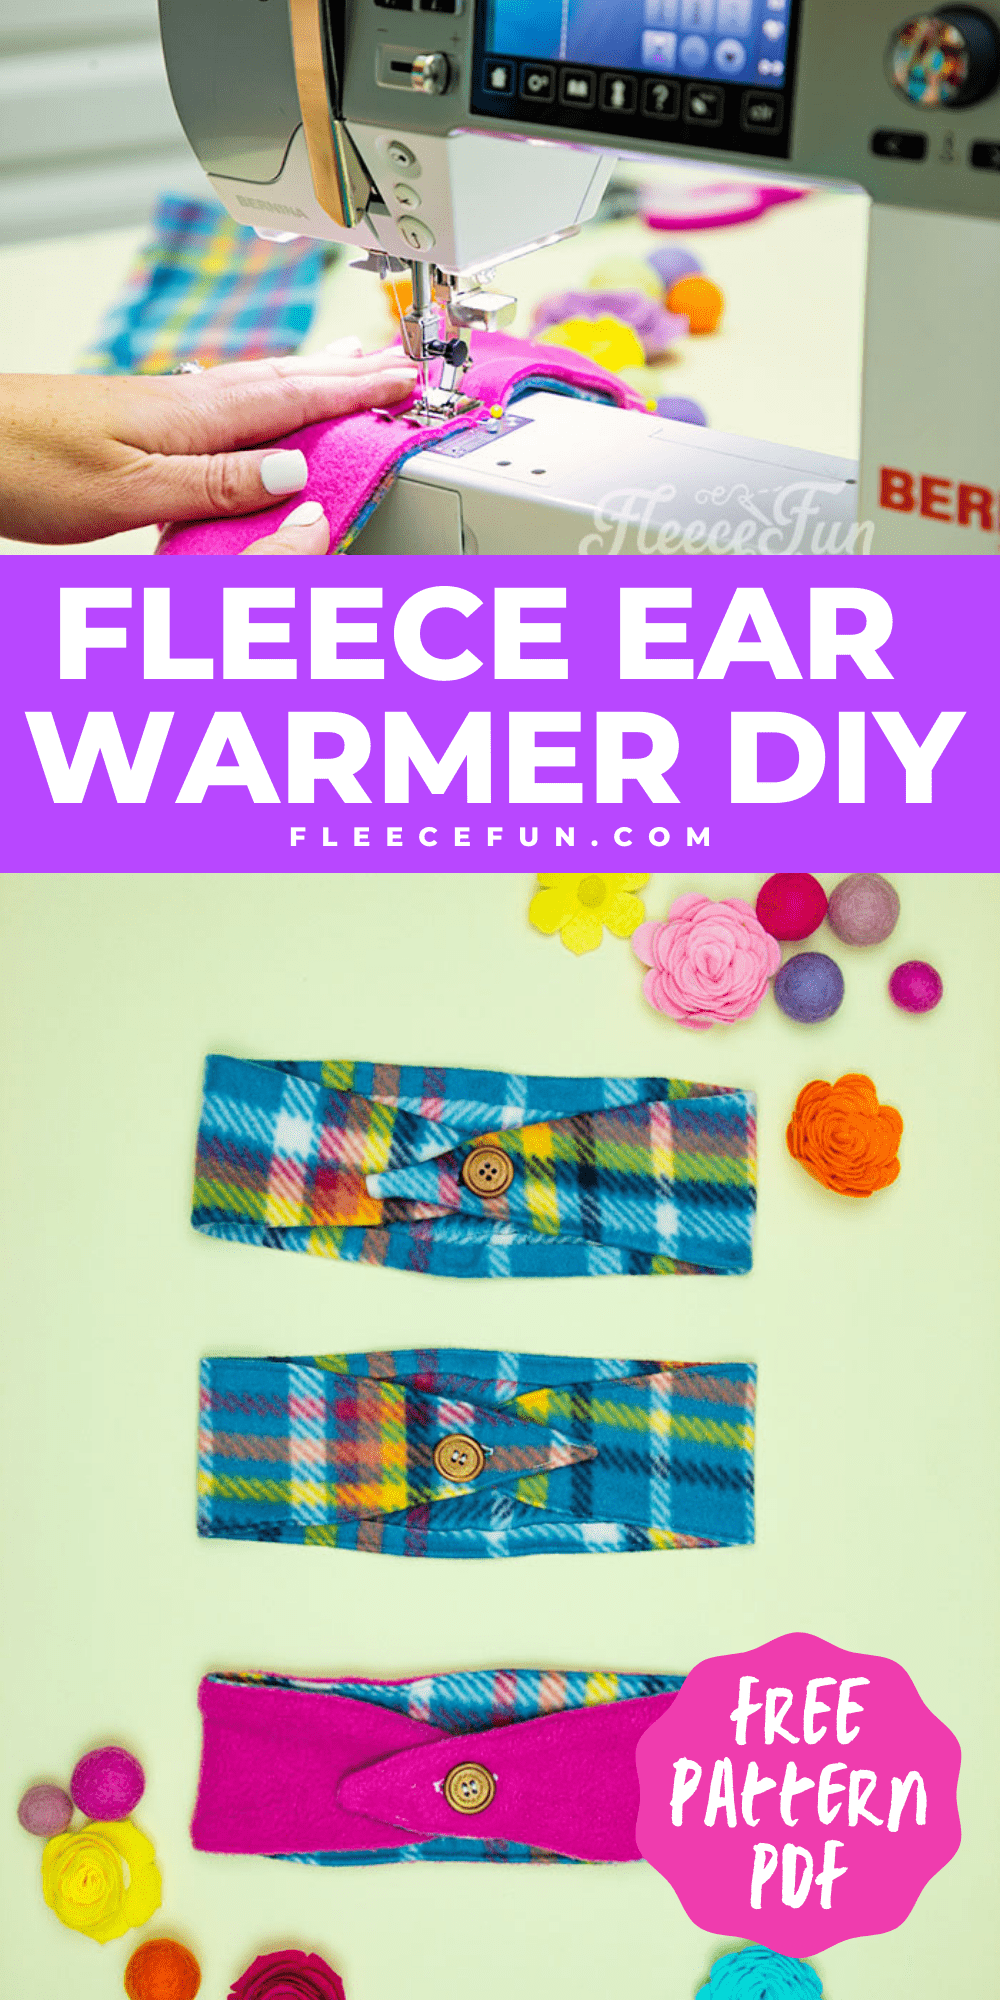 This Fleece Headband Ear Warmer Pattern (Free) is an easy sewing project. The DIY can also be a no sew fleece project! Sizes baby to adult. This Fleece Headband Pattern Ear Warmer looks cute and warm. Really simple instructions and there's a video tutorial to walk me through it - sweet! Great fleece sewing project. Perfect Ear warmer for winter.